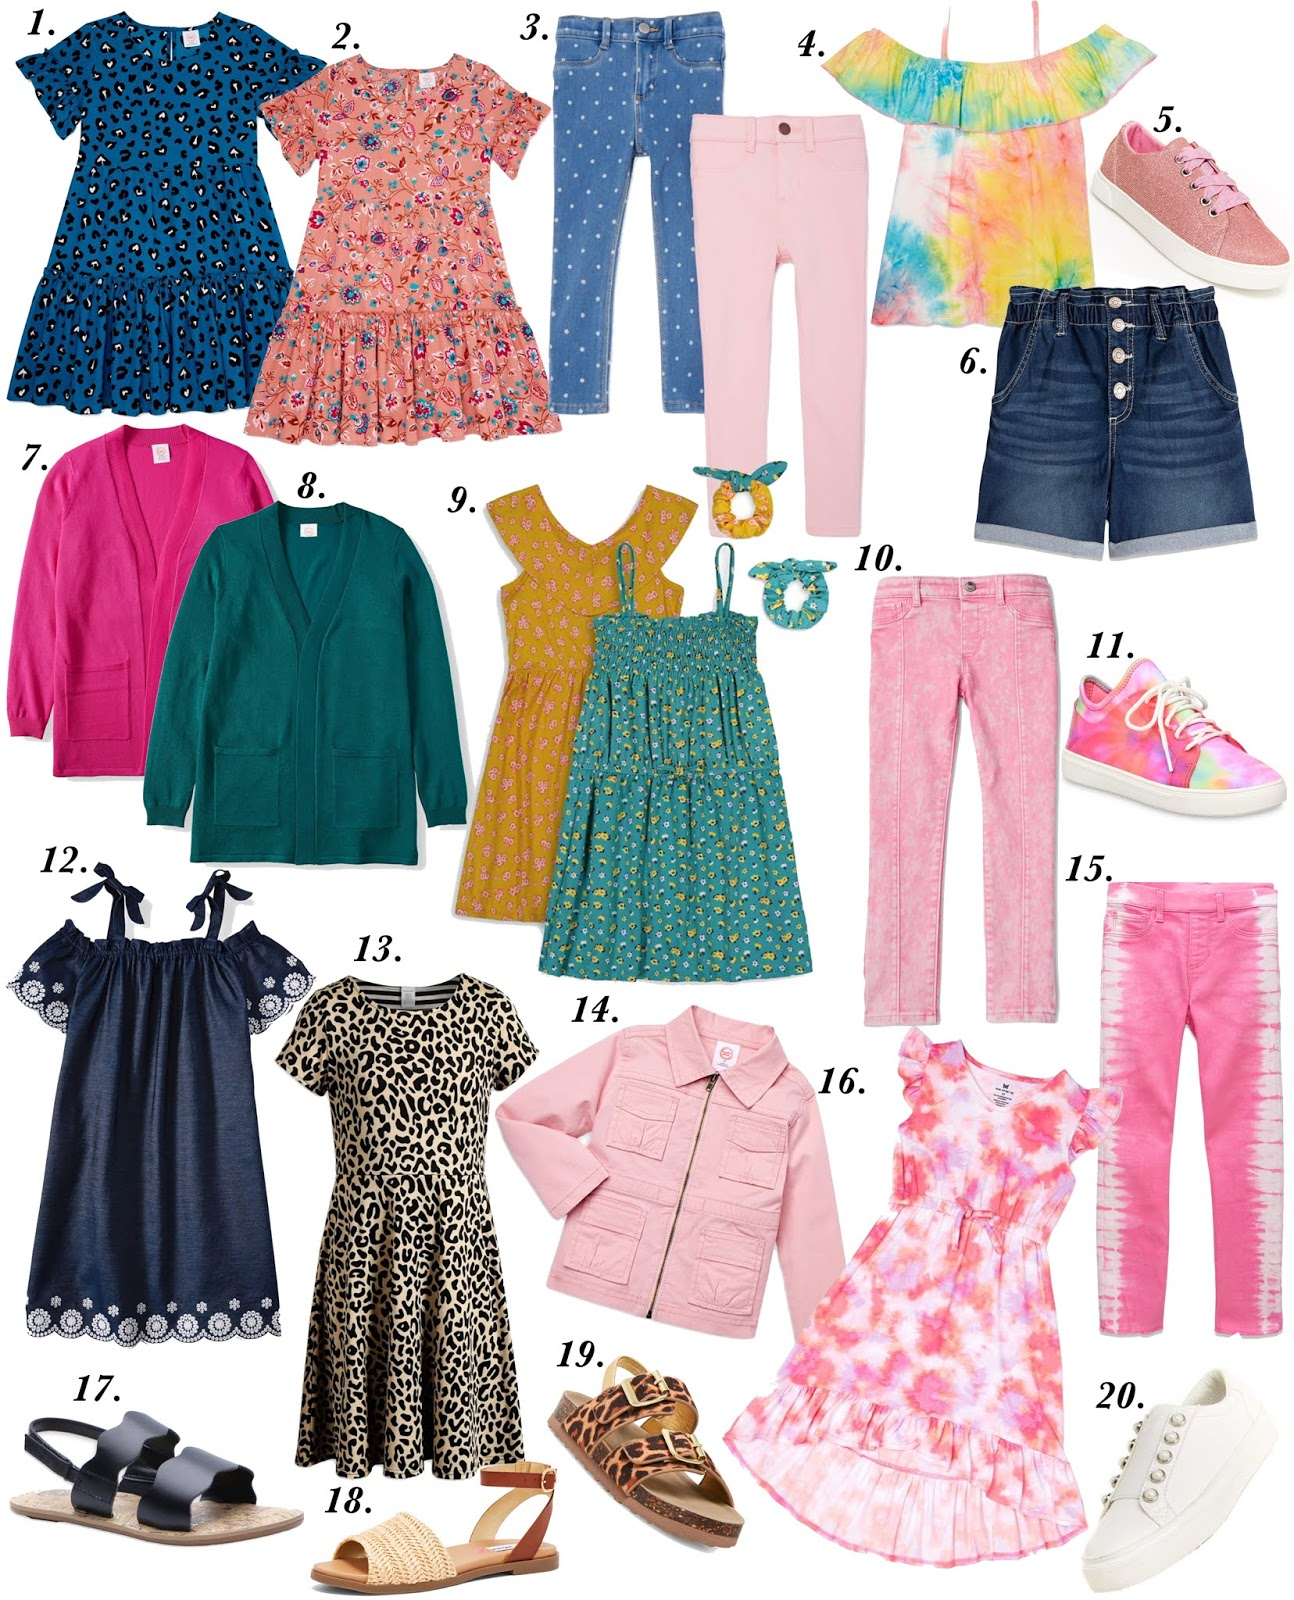 Back To School Finds With Walmart - Something Delightful Blog #walmarfashion #walmart #kidsclothing #affordablefashion